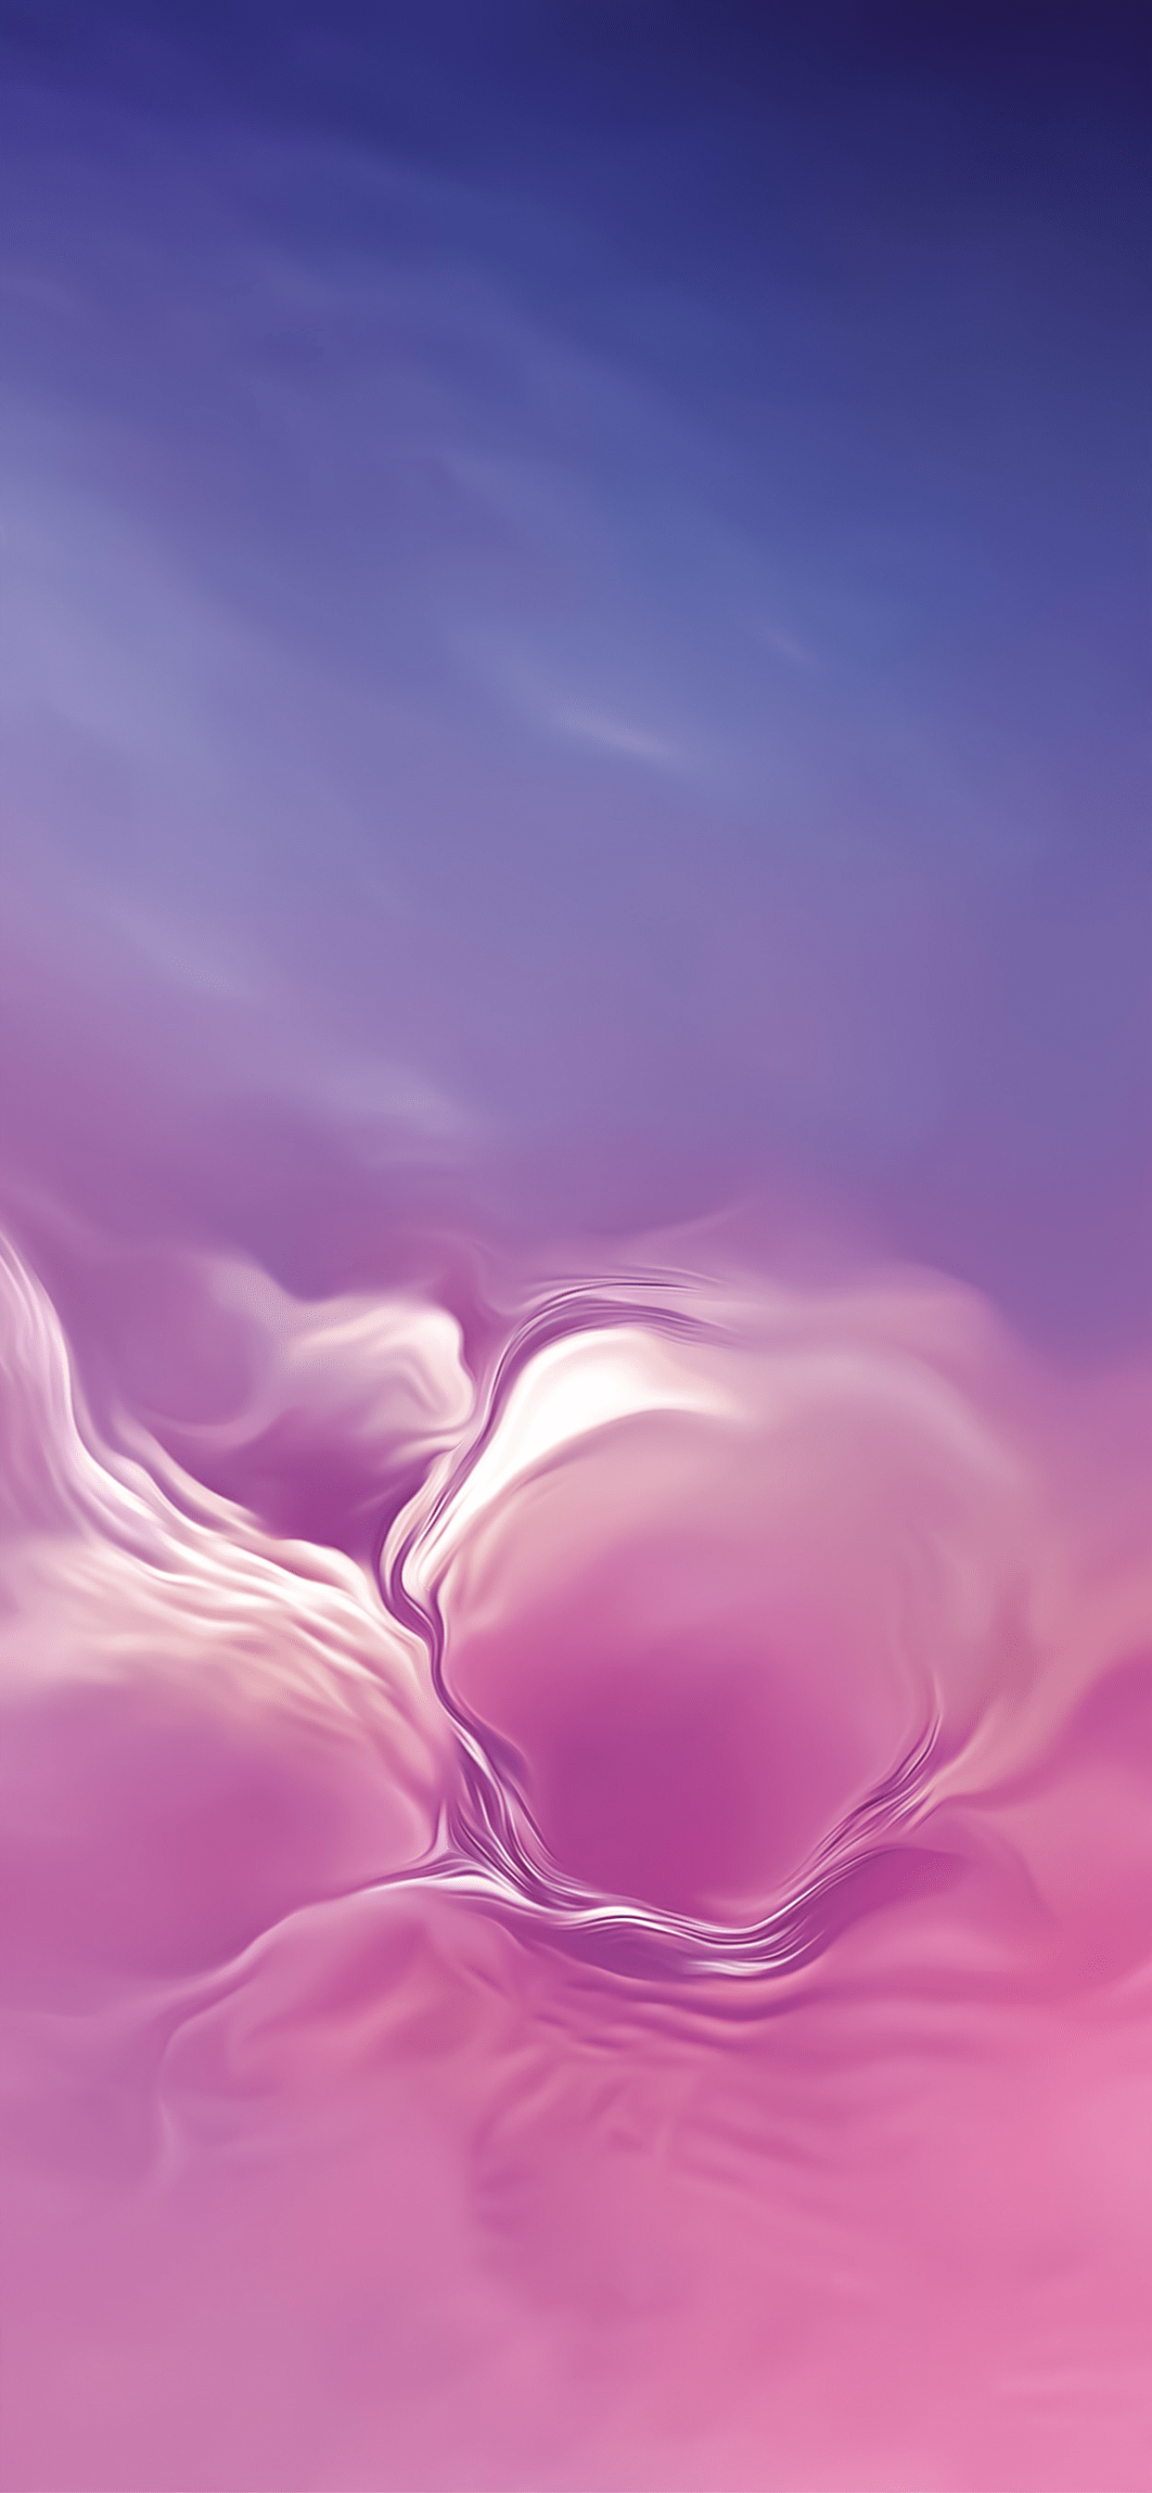 Download Samsung Galaxy S10 Wallpapers Qhd Resolution Backgrounds Cool Galaxy Wallpaper Iphone Samsung Galaxy Wallpaper Samsung Wallpaper